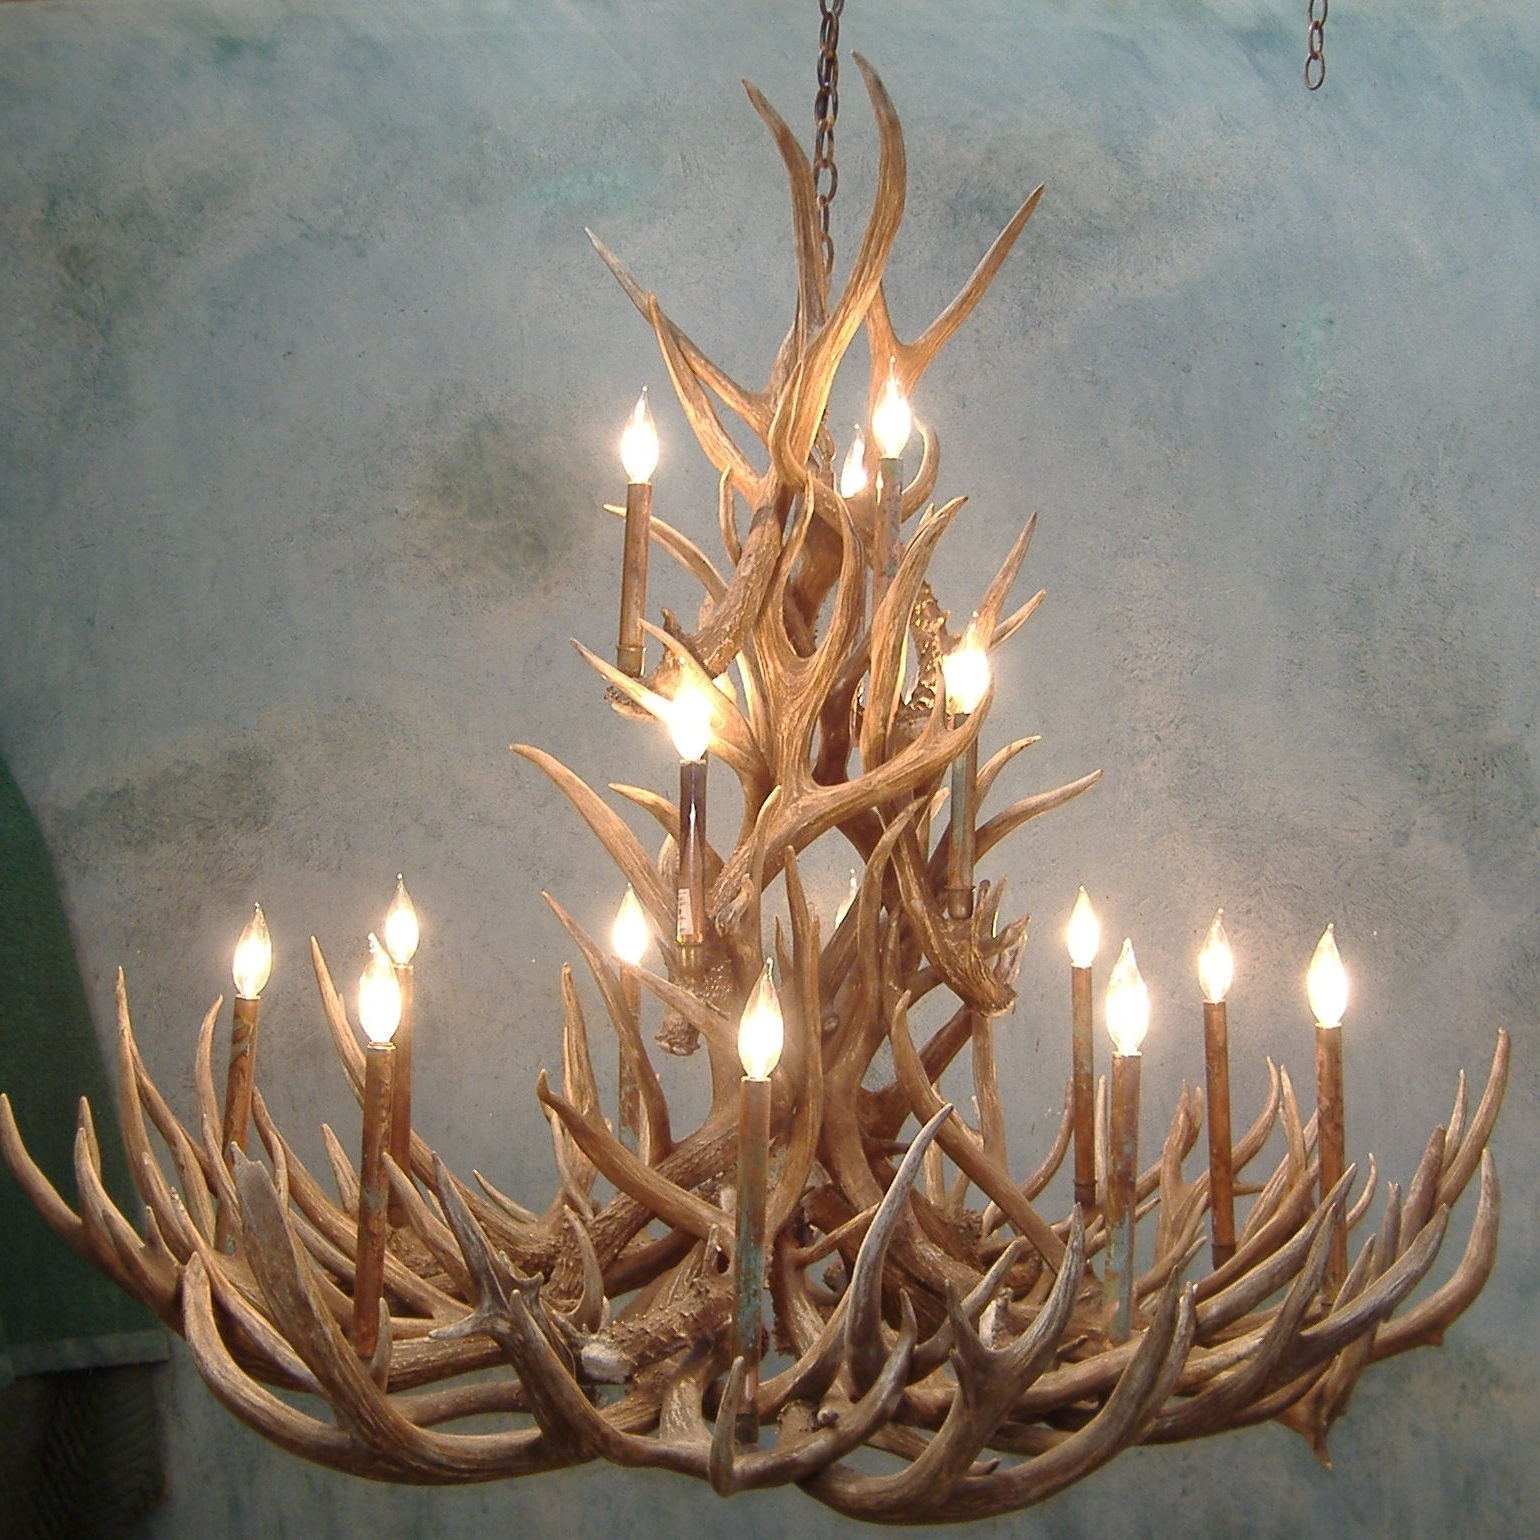 Antler Chandelier Intended For Trendy Spruce Mule Deer Antler Chandelier (View 2 of 20)